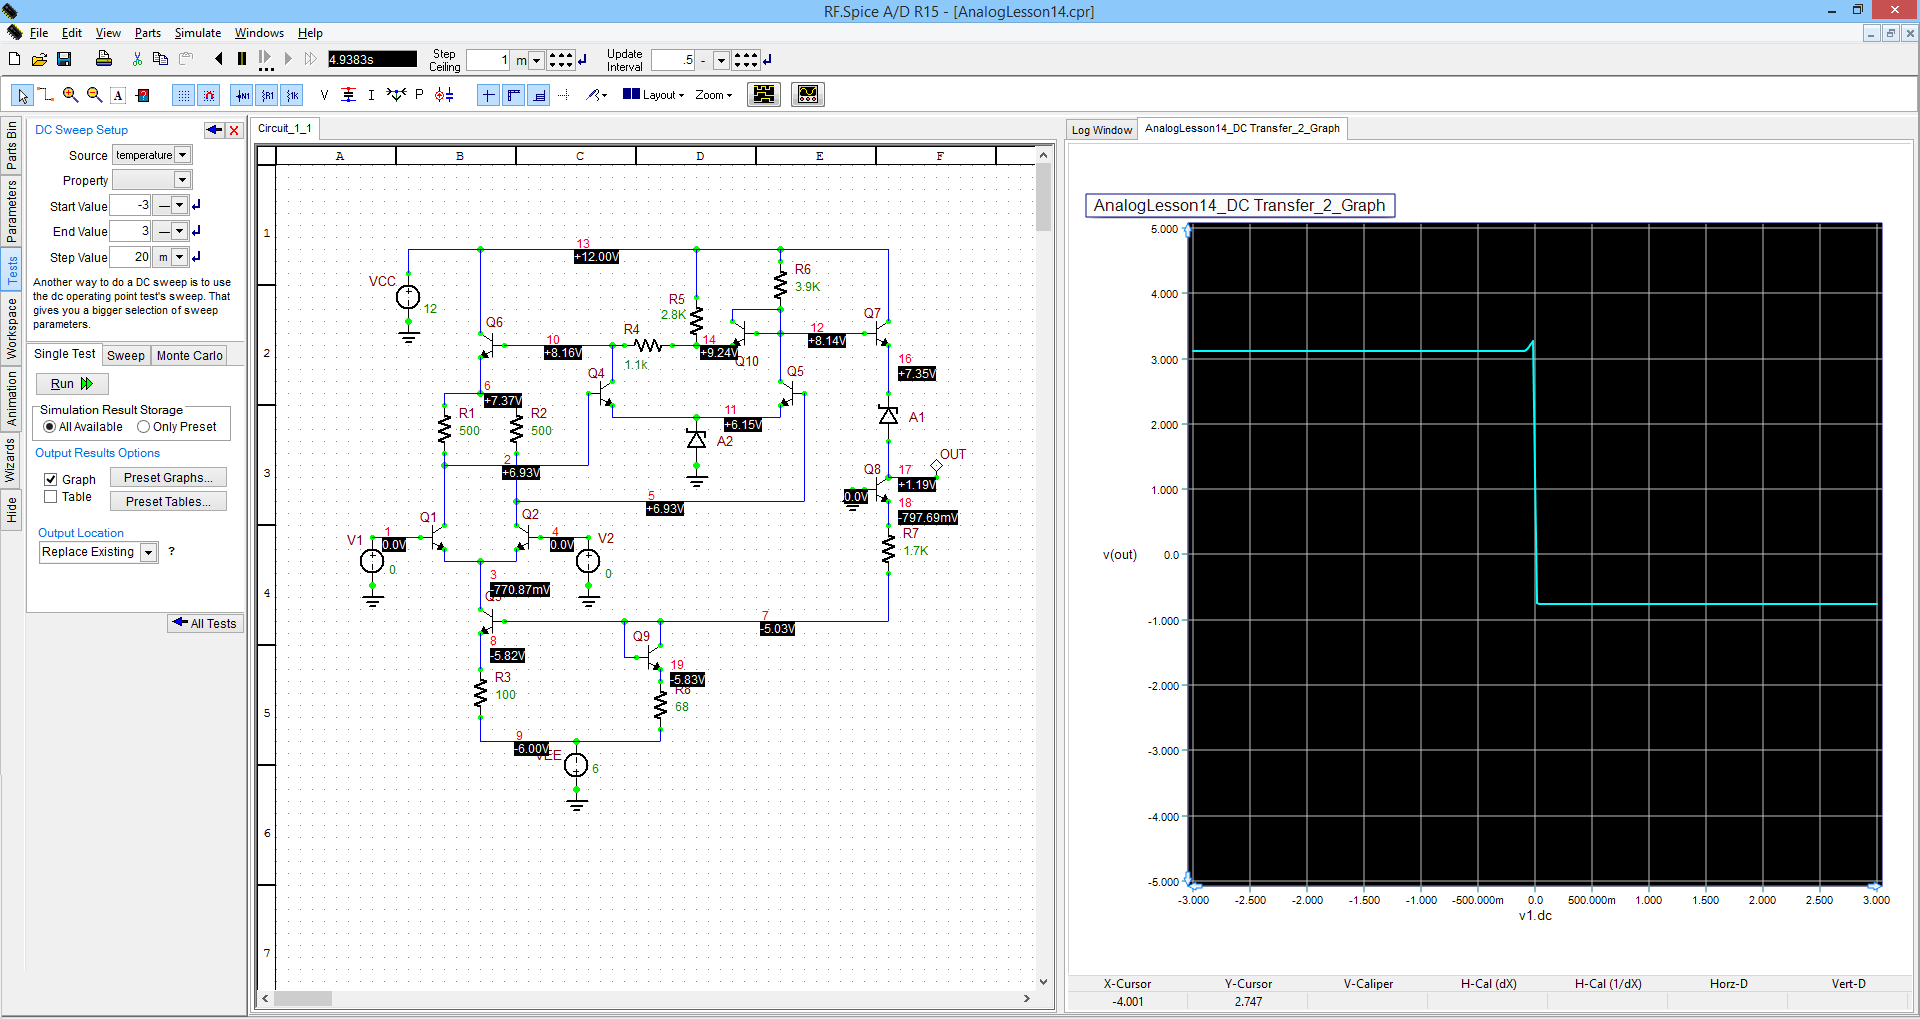 Rf Spice Ad Emag Technologies Inc 10 Integrated Schematic Editor And Mixed Analog Digital Simulator Purchase